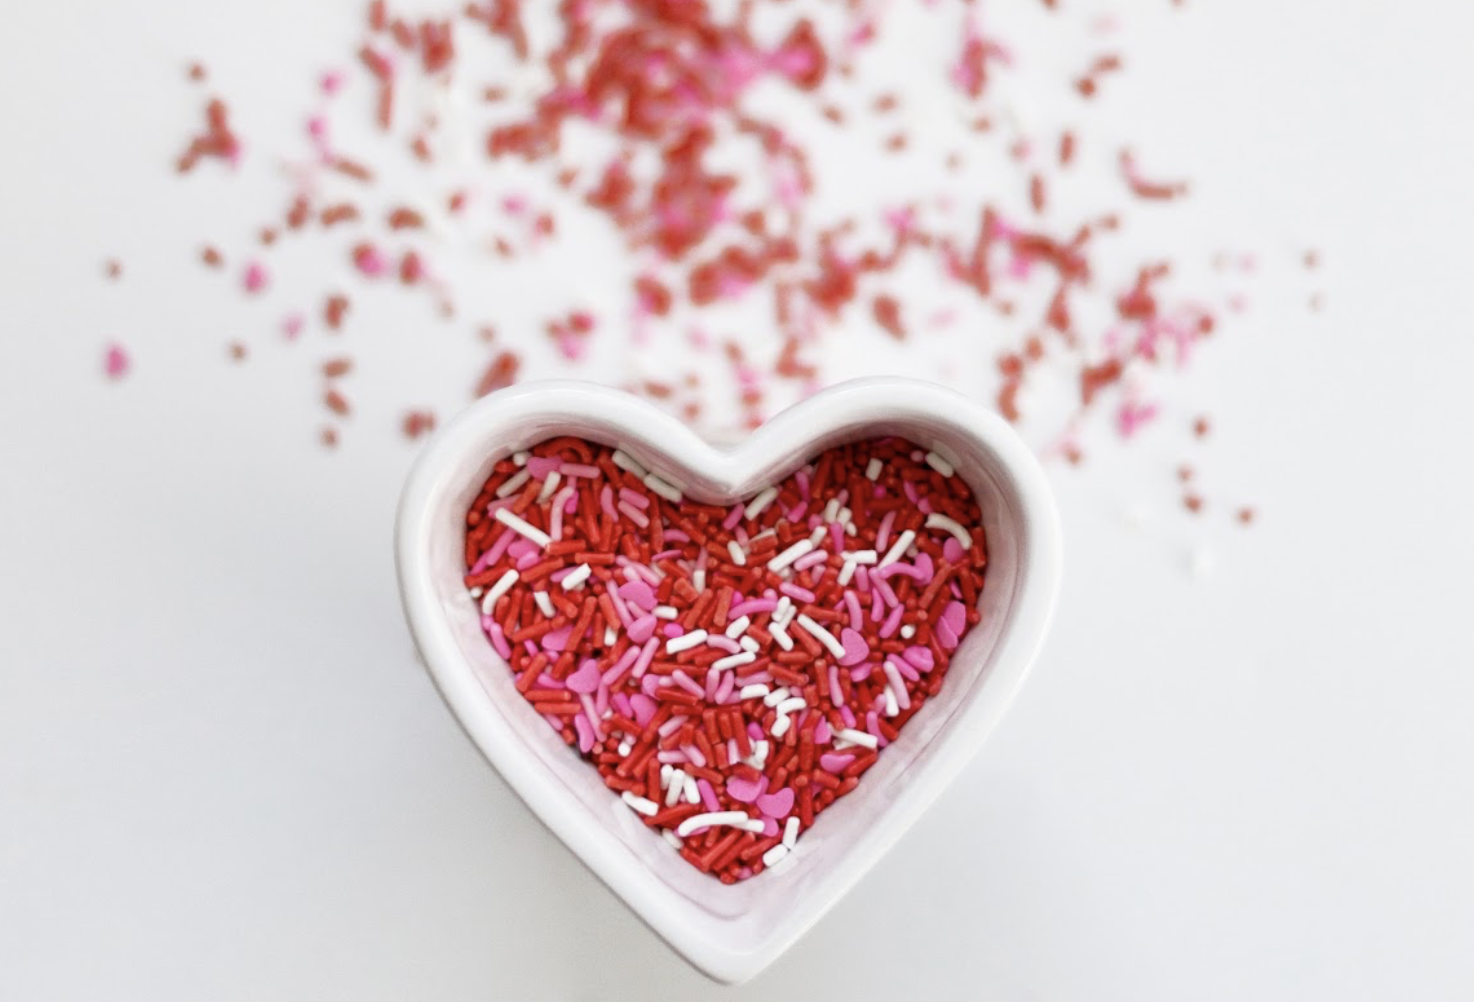 Sprinkle with love.